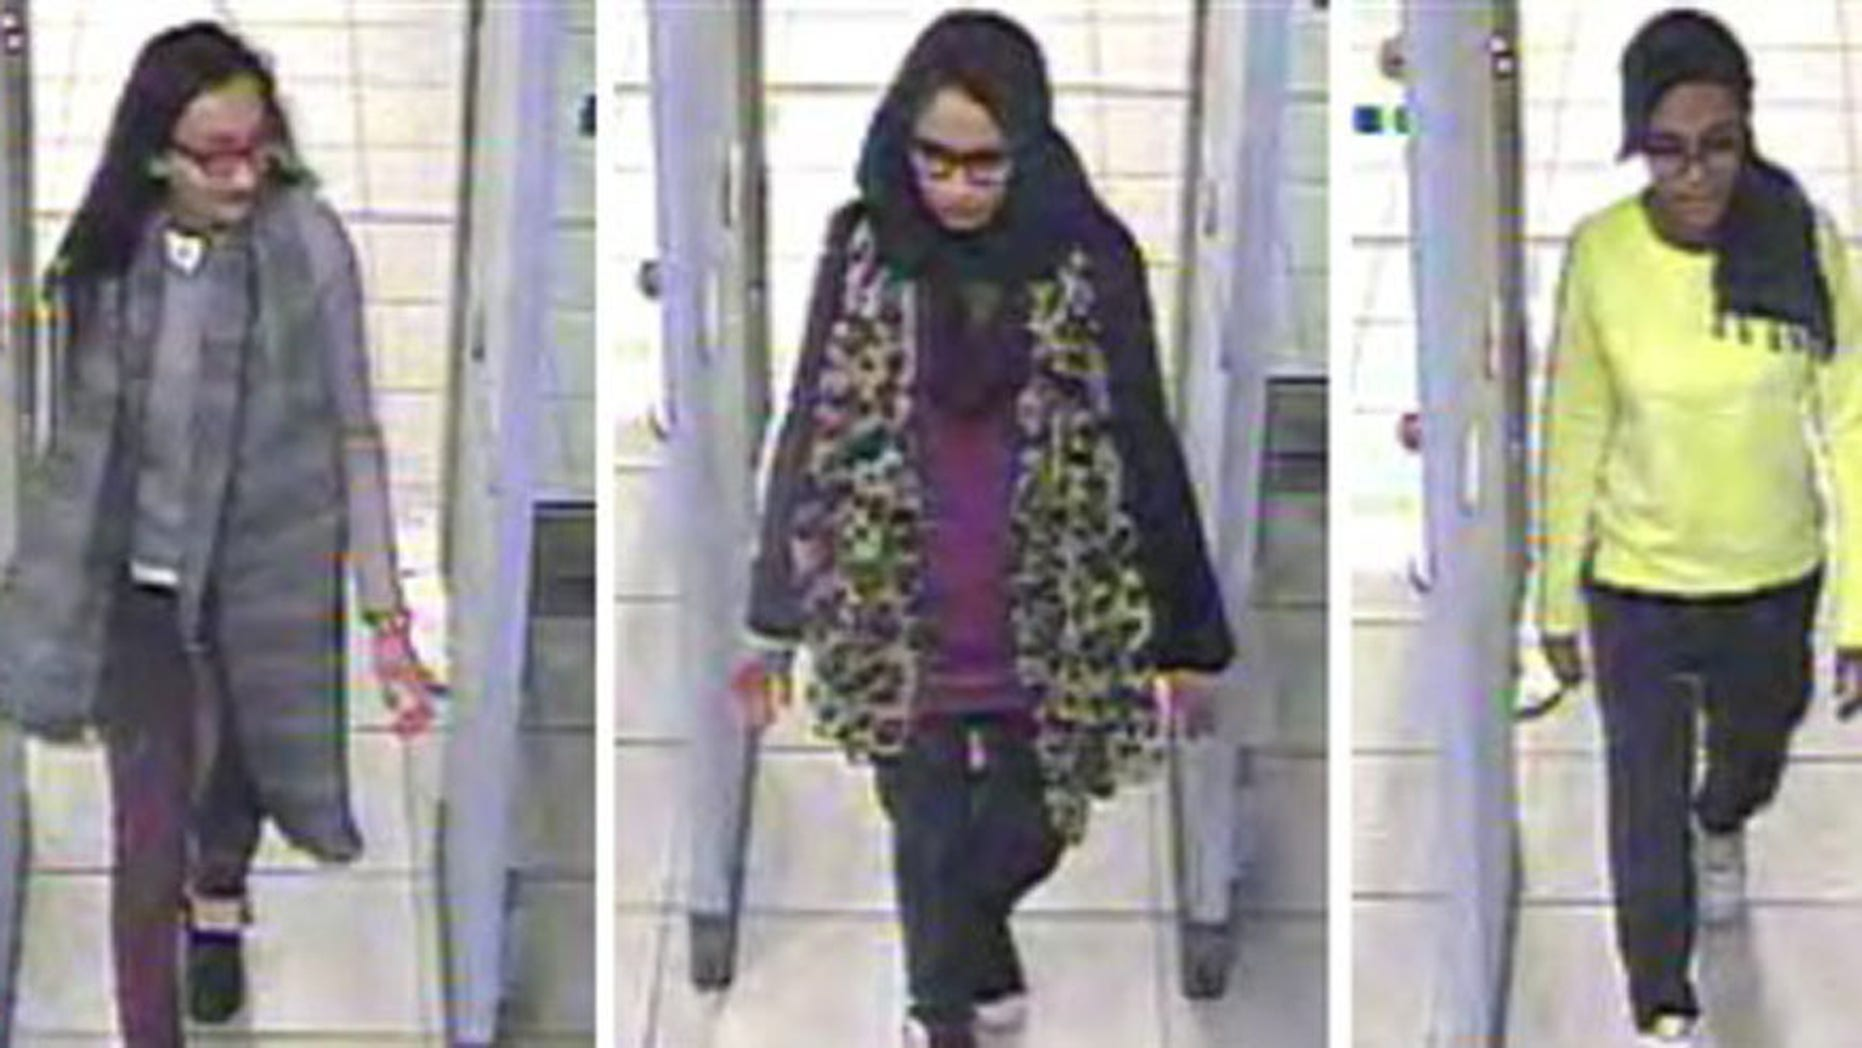 Monday Feb. 23, 2015 file handout image of a three image combo of stills taken from CCTV issued by the Metropolitan Police Kadiza Sultana, left, Shamima Begum, centre and and Amira Abase going through security at Gatwick airport, before they caught their flight to Turkey. (Metropolitan Police via AP)